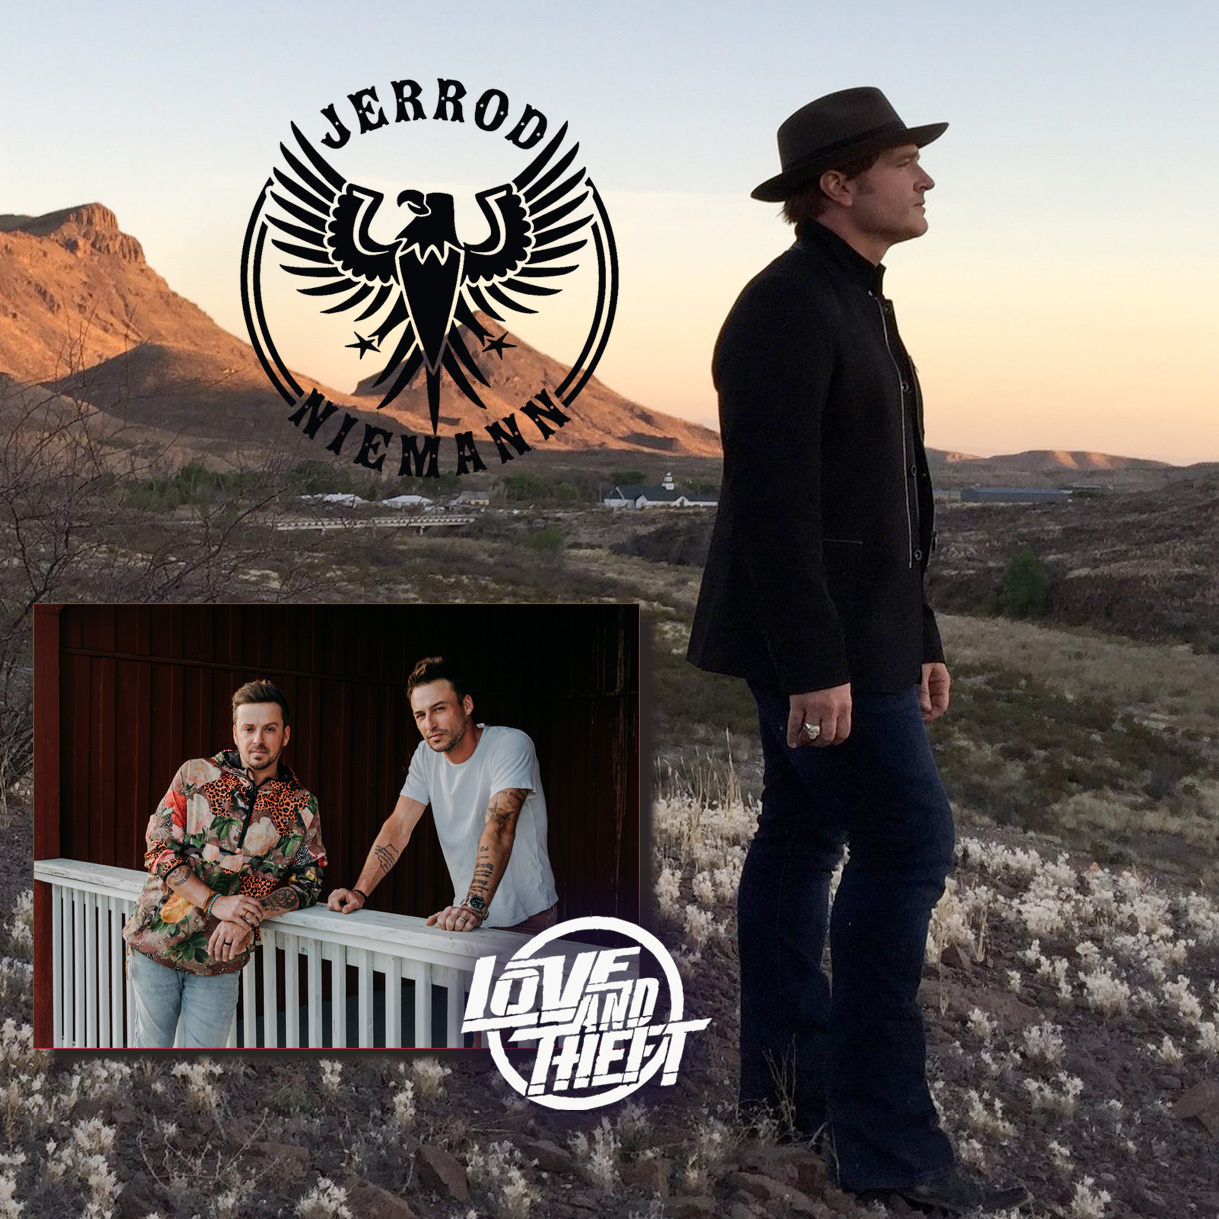 Jerrod Niemann with Love and Theft